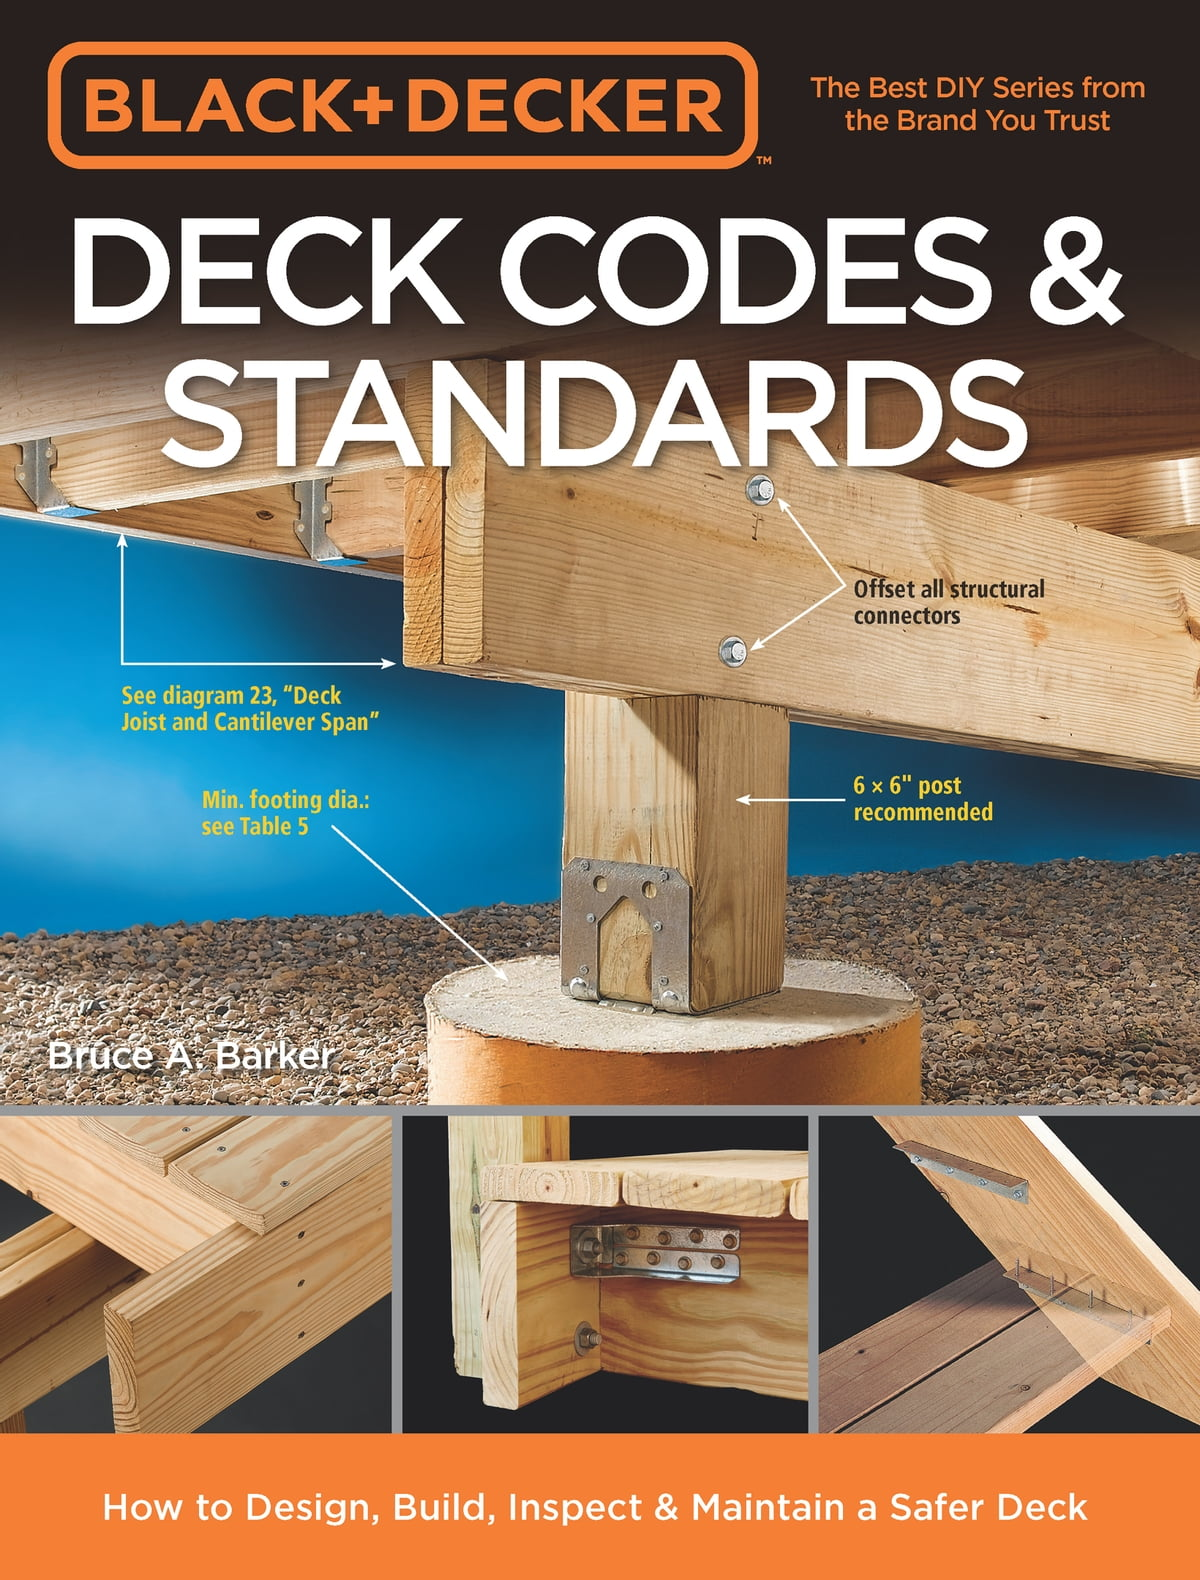 Black decker deck codes standards ebook by bruce a barker black decker deck codes standards ebook by bruce a barker 9780760358160 rakuten kobo baanklon Image collections